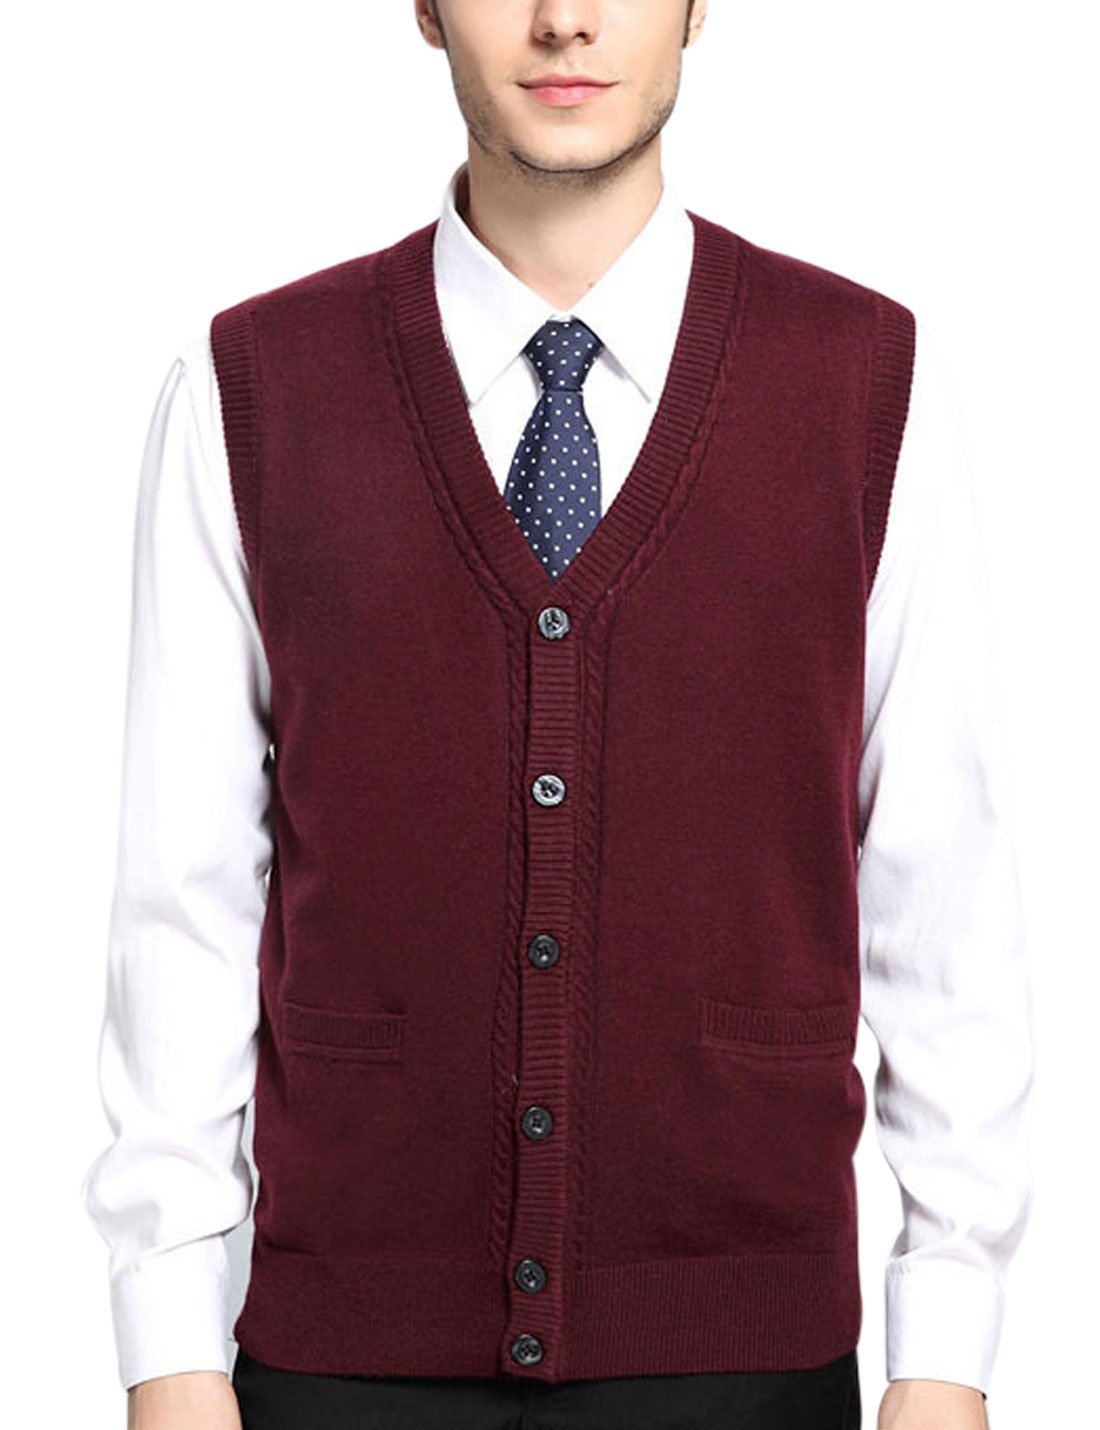 Yeokou Men's V Neck Wool Cashmere Sleeveless Button Down Sweater Vest Waistcoat (X-Large, Wine Red002)